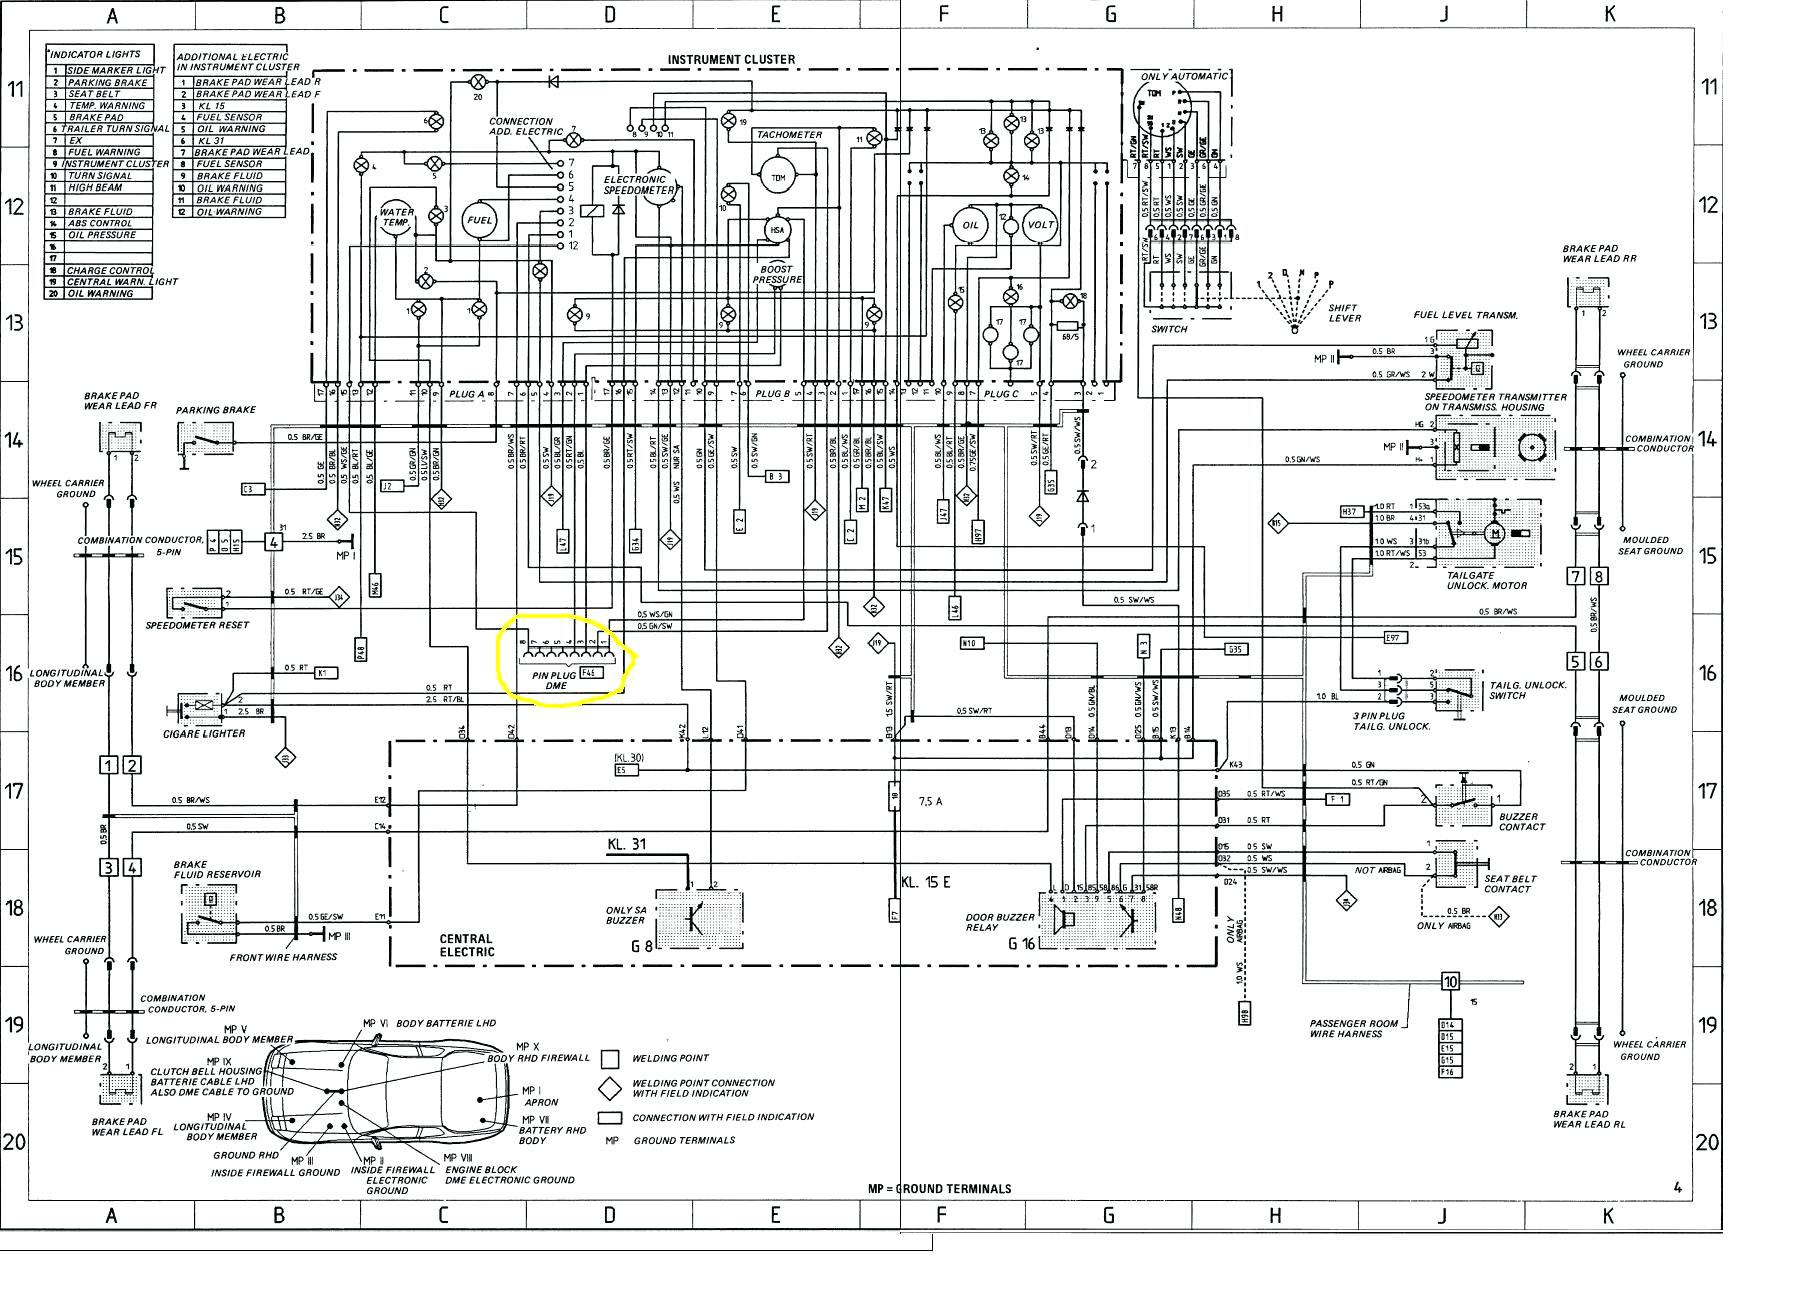 Diagram 1966 Porsche Wiring Diagram Full Version Hd Quality Wiring Diagram Ezplugwiringk Queidue It